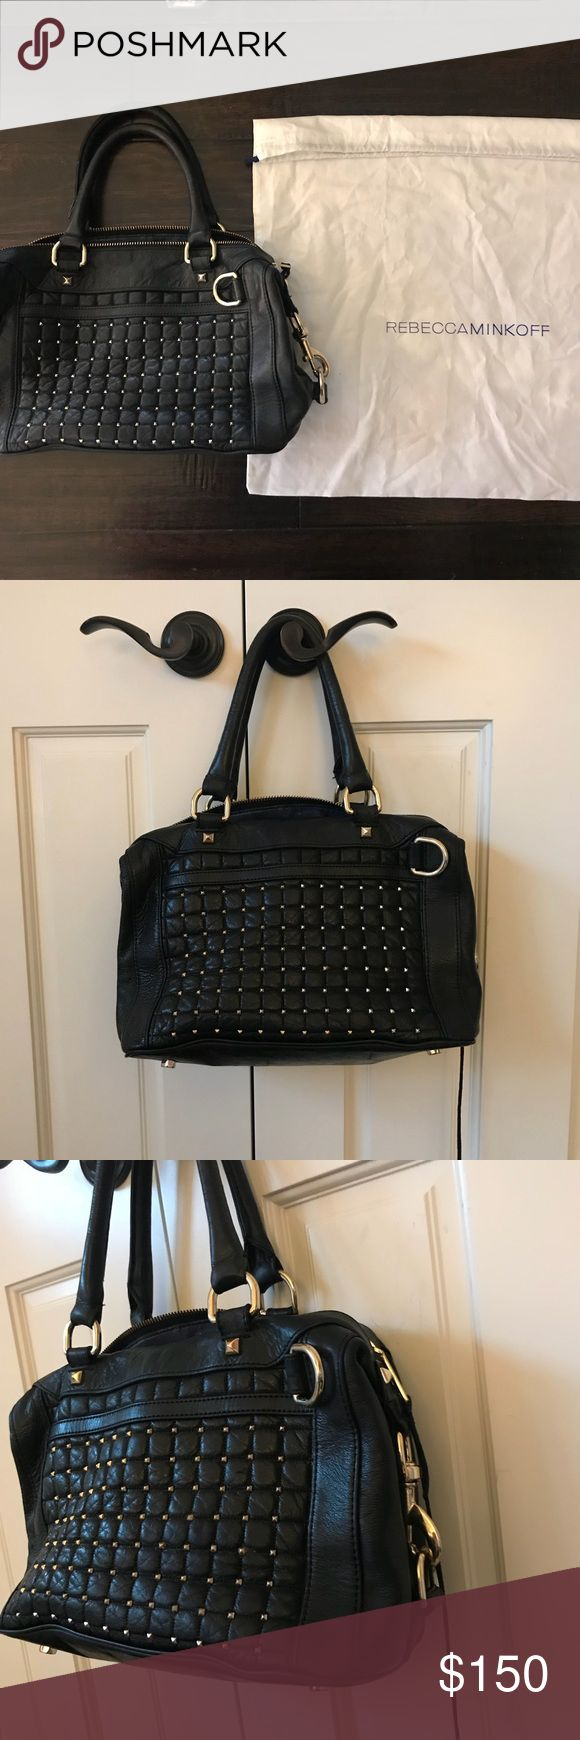 Rebecca Minkoff 'MAB - Mini' Pyramid Stud Satchel A boxy satchel shaped from creamy, scuffed leather boasts a runway-ready look, accented with black-nickel pyramid studs. One of my favorite bags! Comes with dust bag. Signs of wear: inner name label slightly distorted/one of the leather tassels is halfway ripped, both pictured above. Overall in great condition! Top zip closure. Interior zip, wall and cell phone pockets. Protective metal feet. Signature lining. Leather. By Rebecca Minkoff…